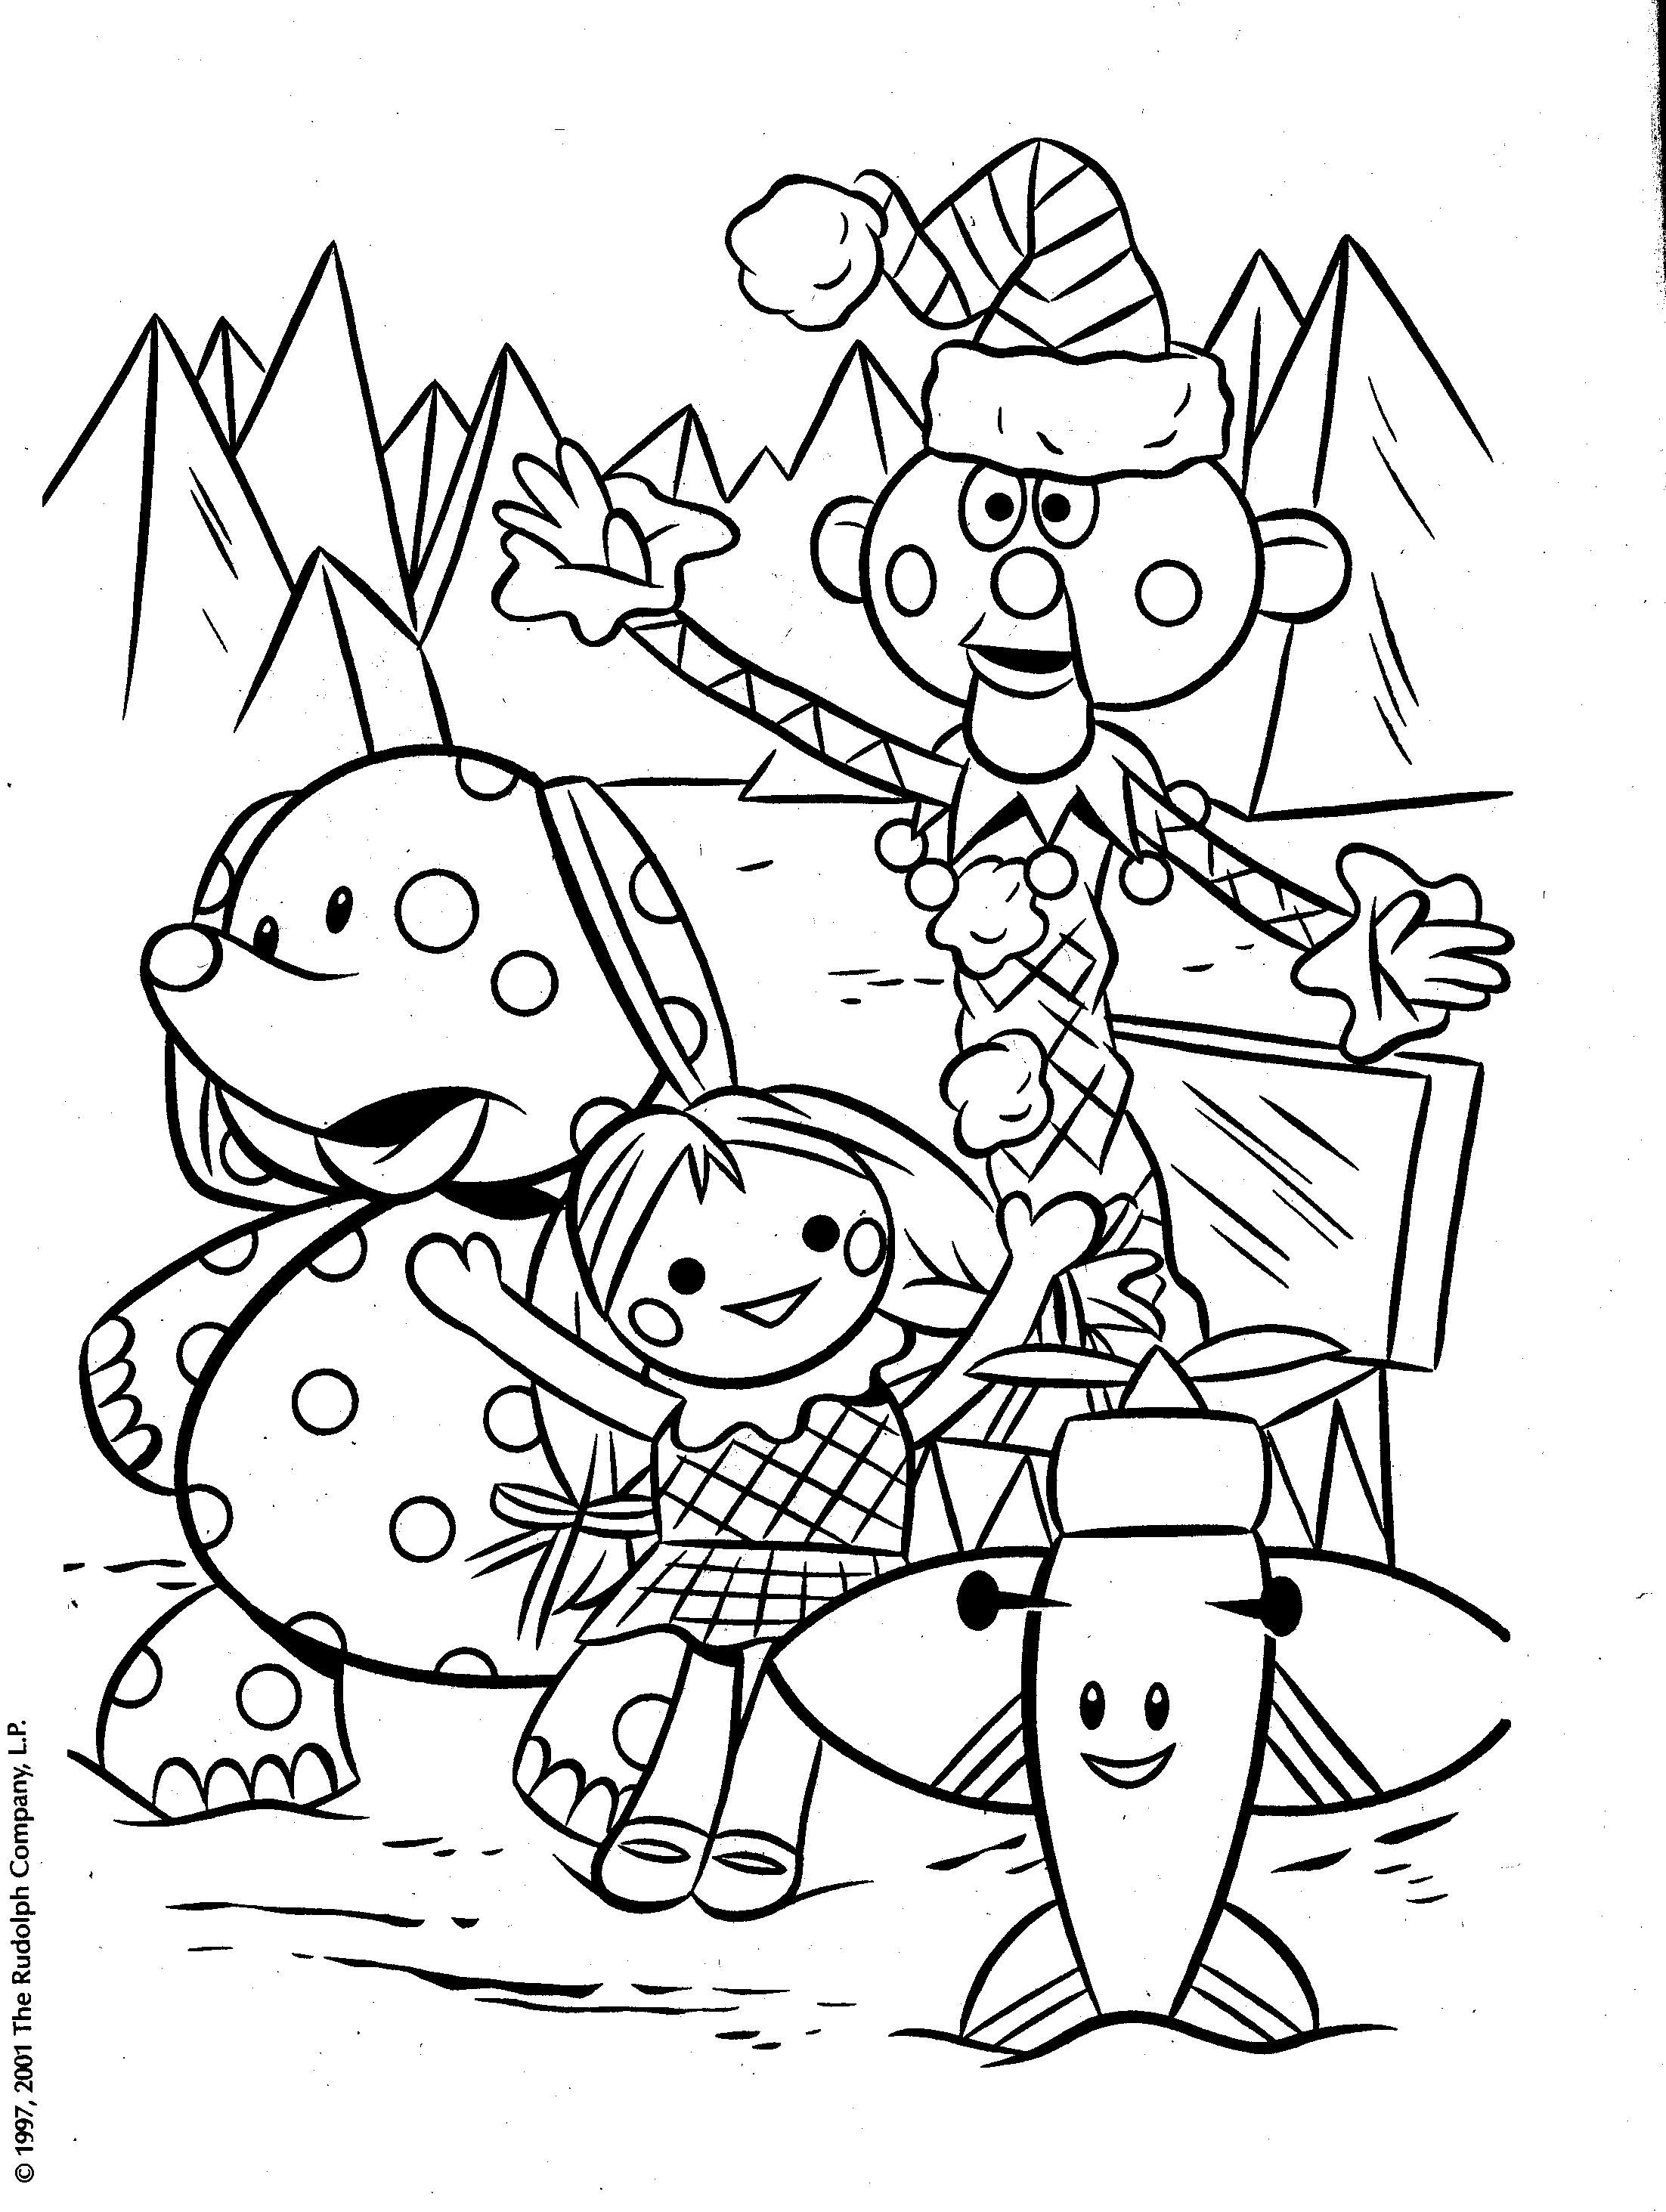 The Best Free Rudolph Coloring Page Images Download From